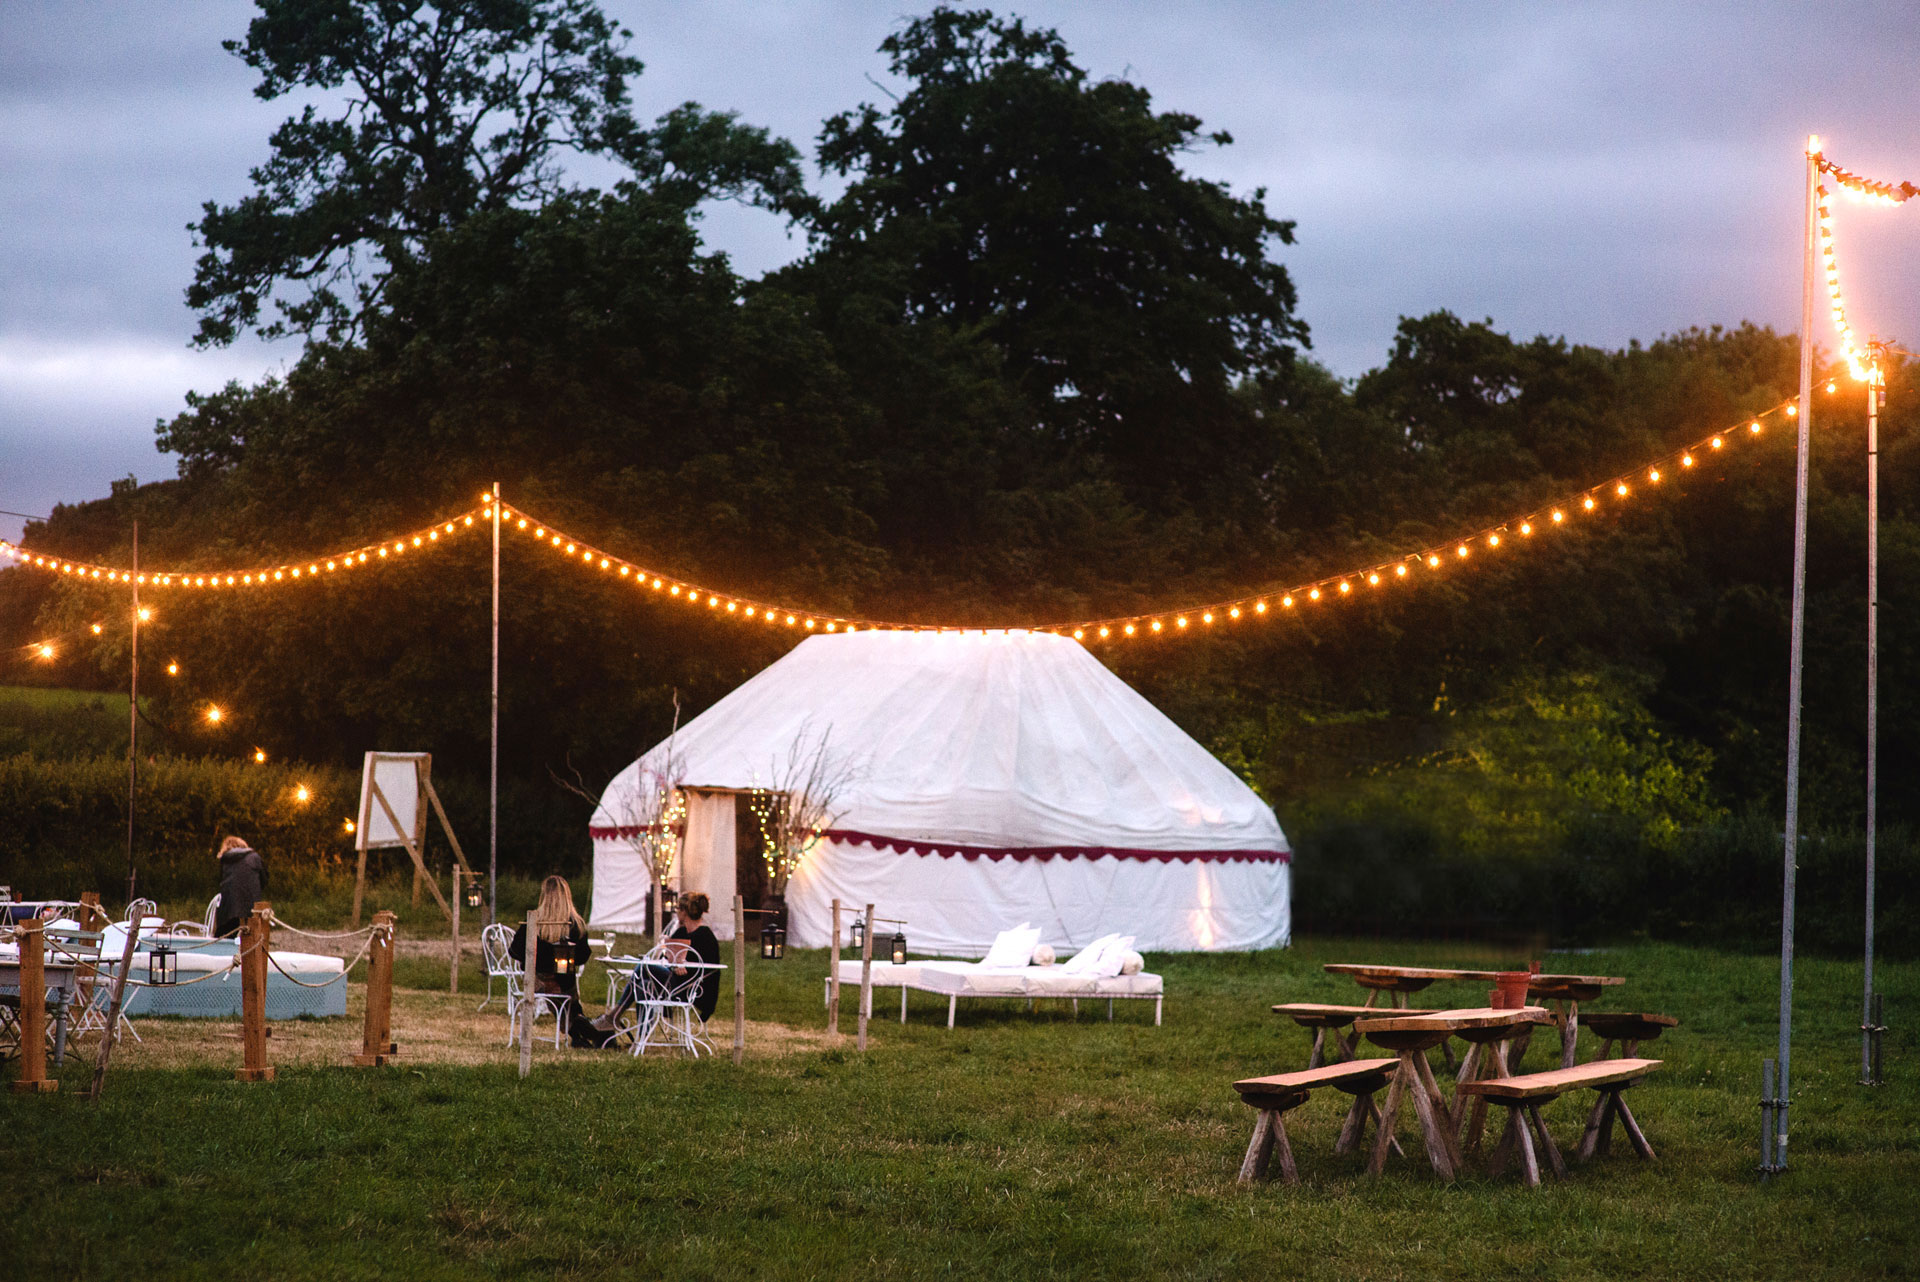 Pennard Orchard Reception tent at dusk